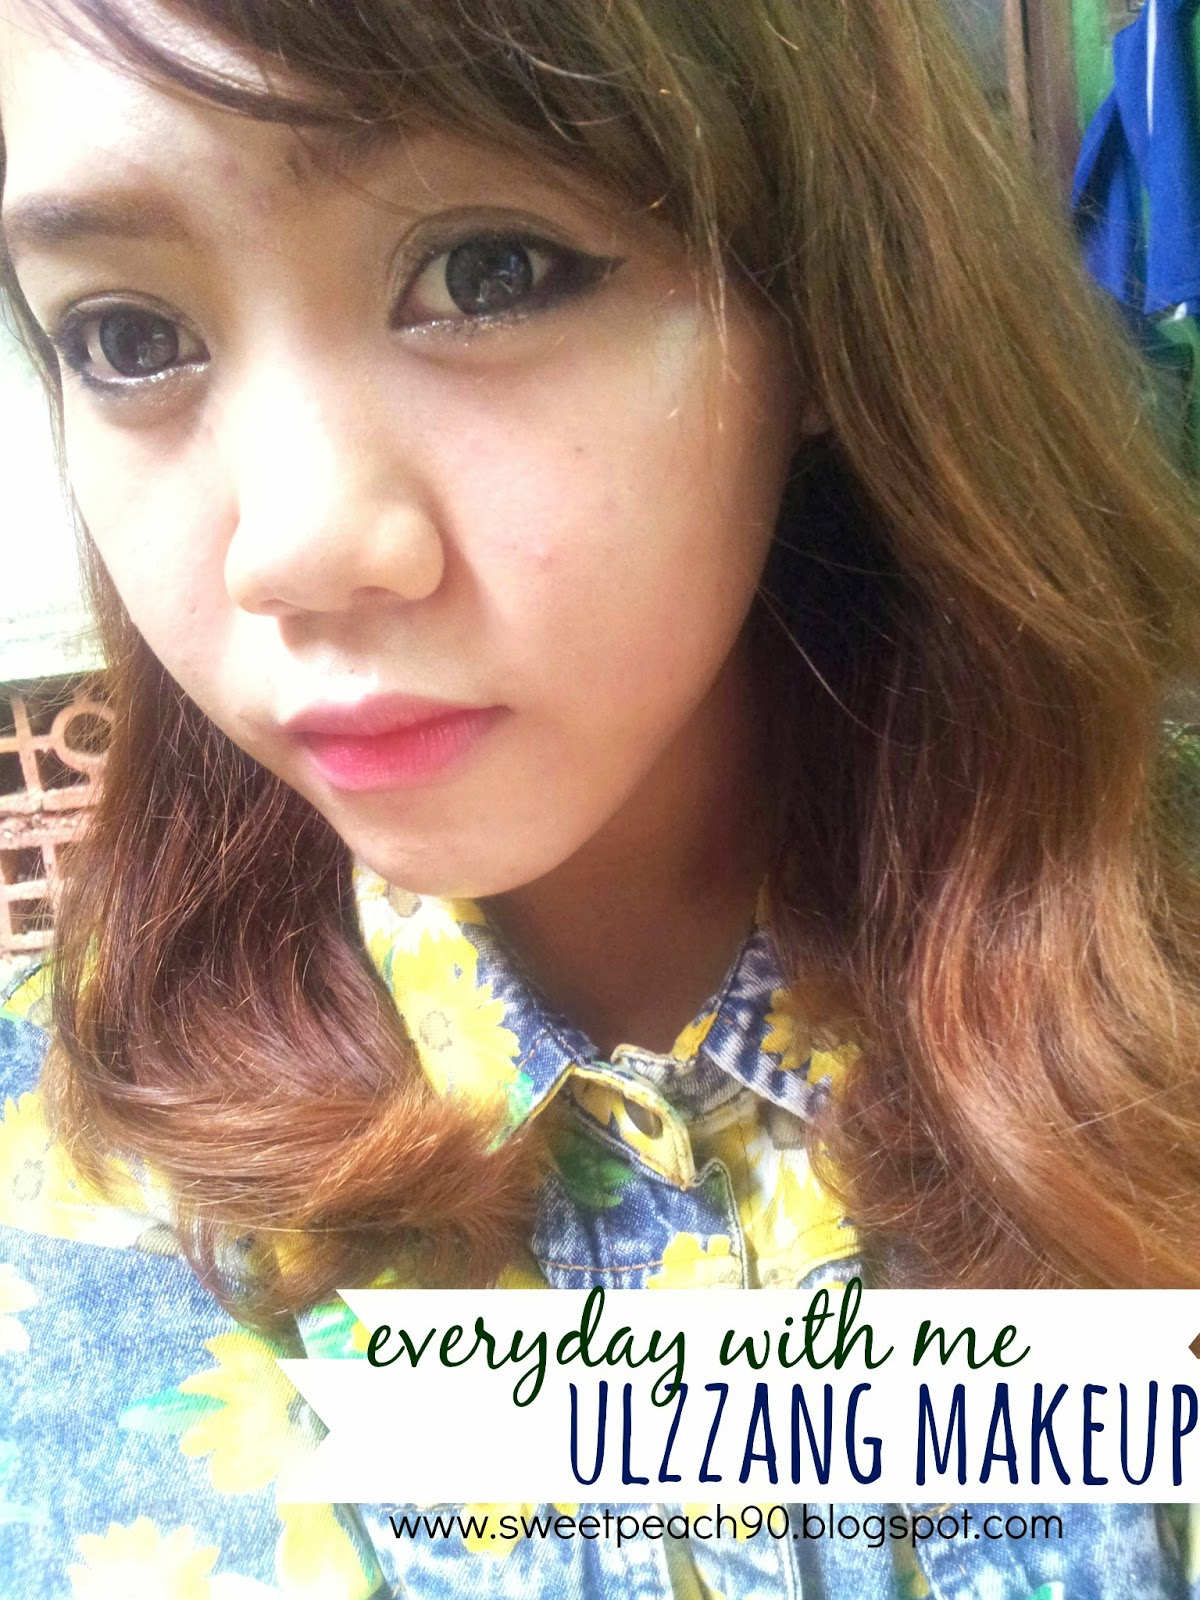 Ulzzang Makeup Tips: Sweet Peach: [Everyday With Me] Ulzzang Makeup